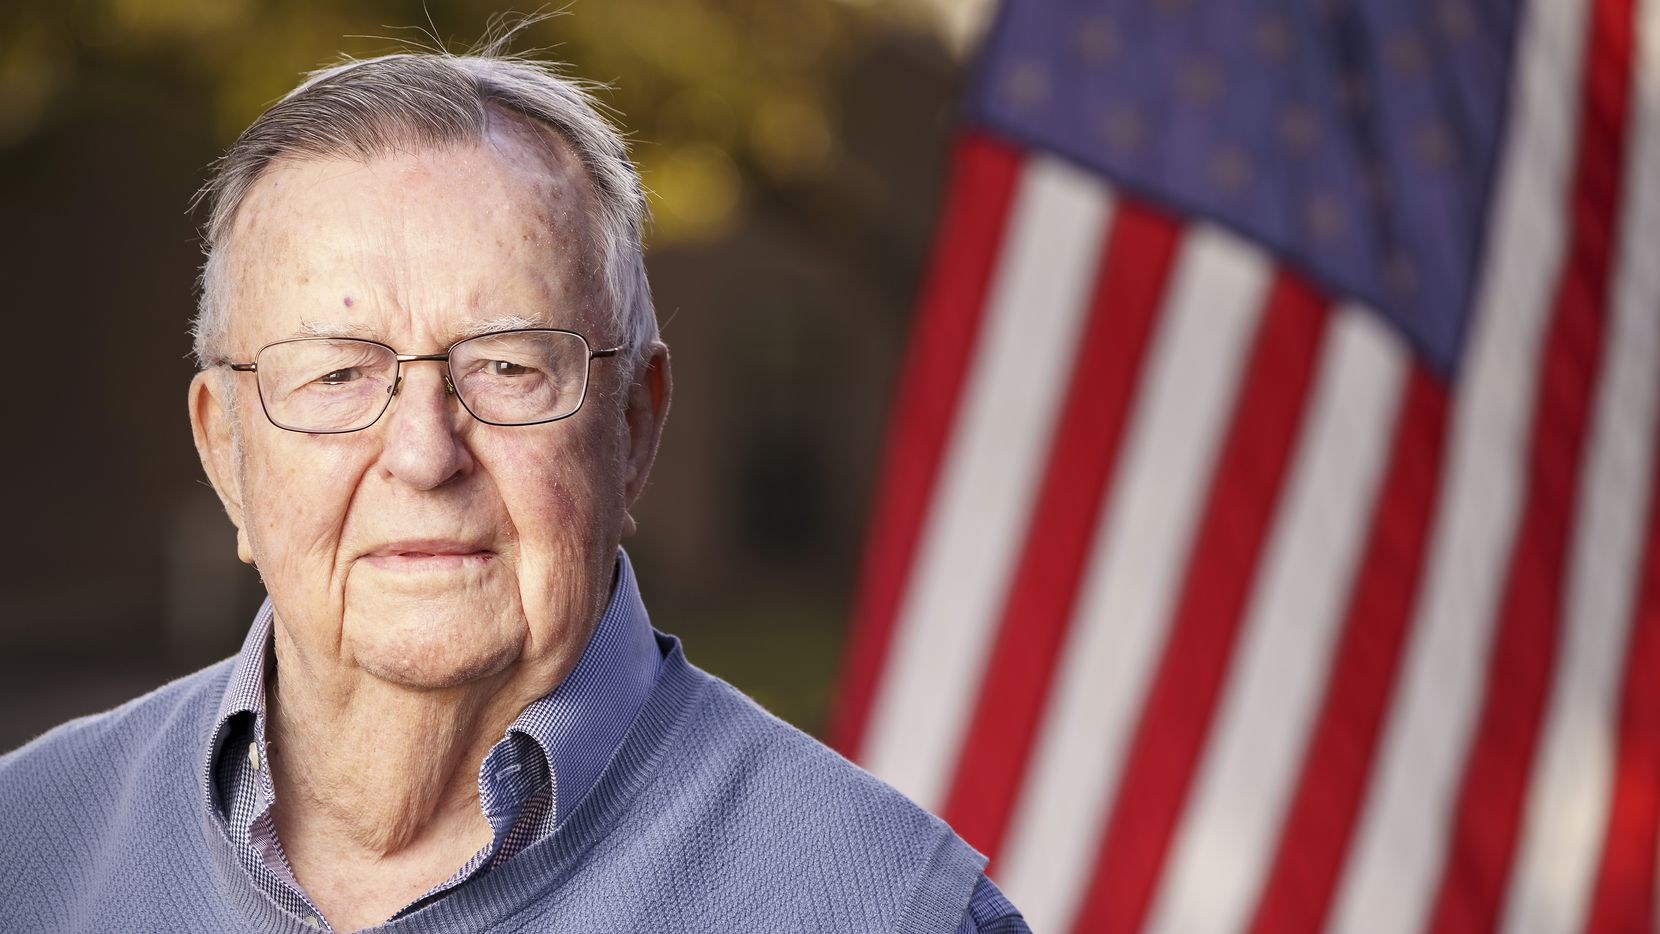 World War II veteran Arthur Wood will turn 100 a couple of weeks after Veterans Day, but first he'll be among the guests of honor at a ceremony at his Dallas senior living community.